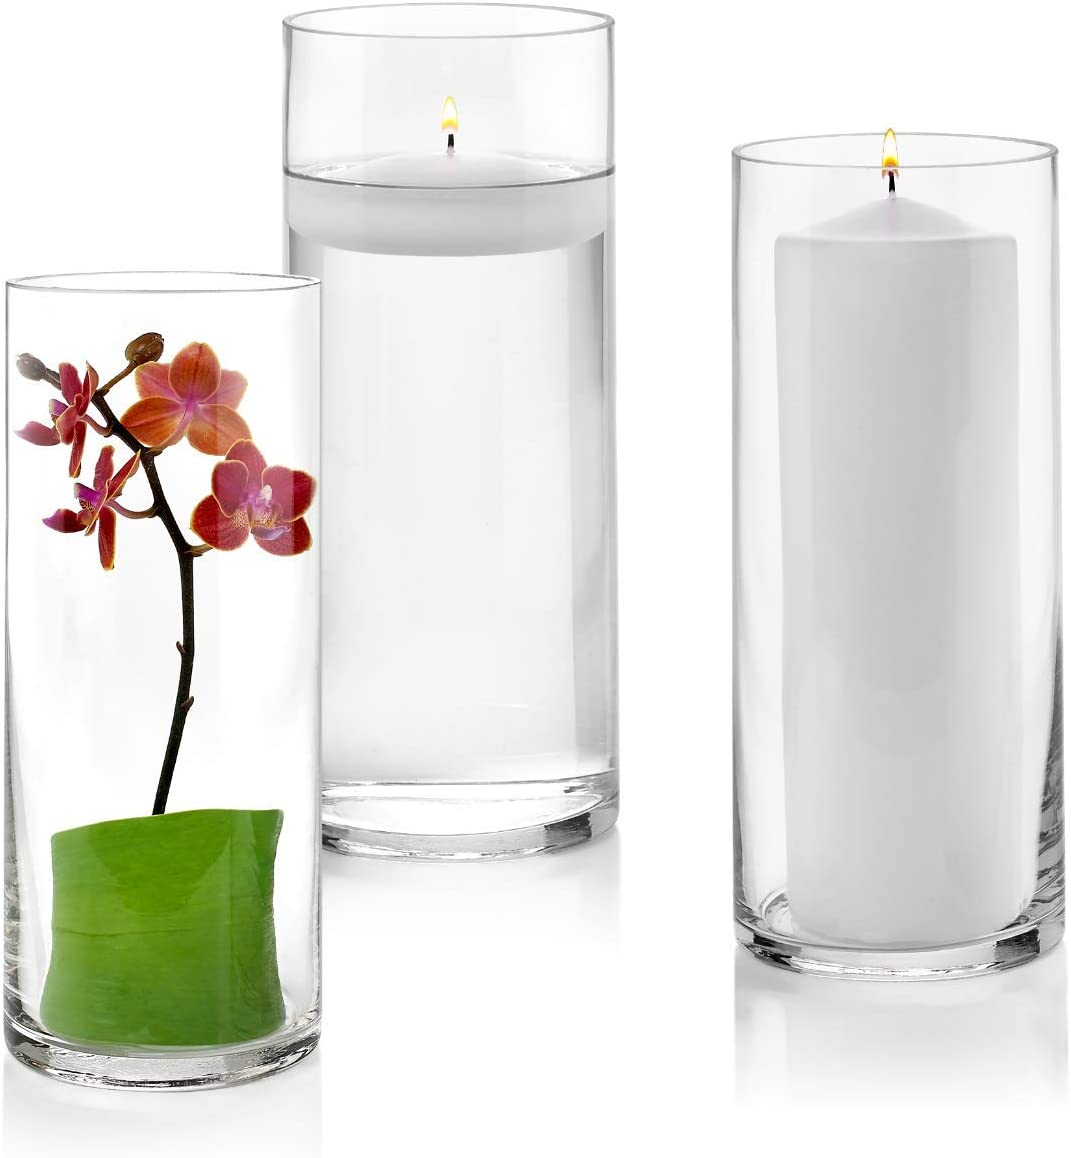 Set of 3 Glass Cylinder Vases 10 Inch Tall – Multi-use Pillar Candle, Floating Candles Holders or Flower Vase Perfect as a Wedding Centerpieces